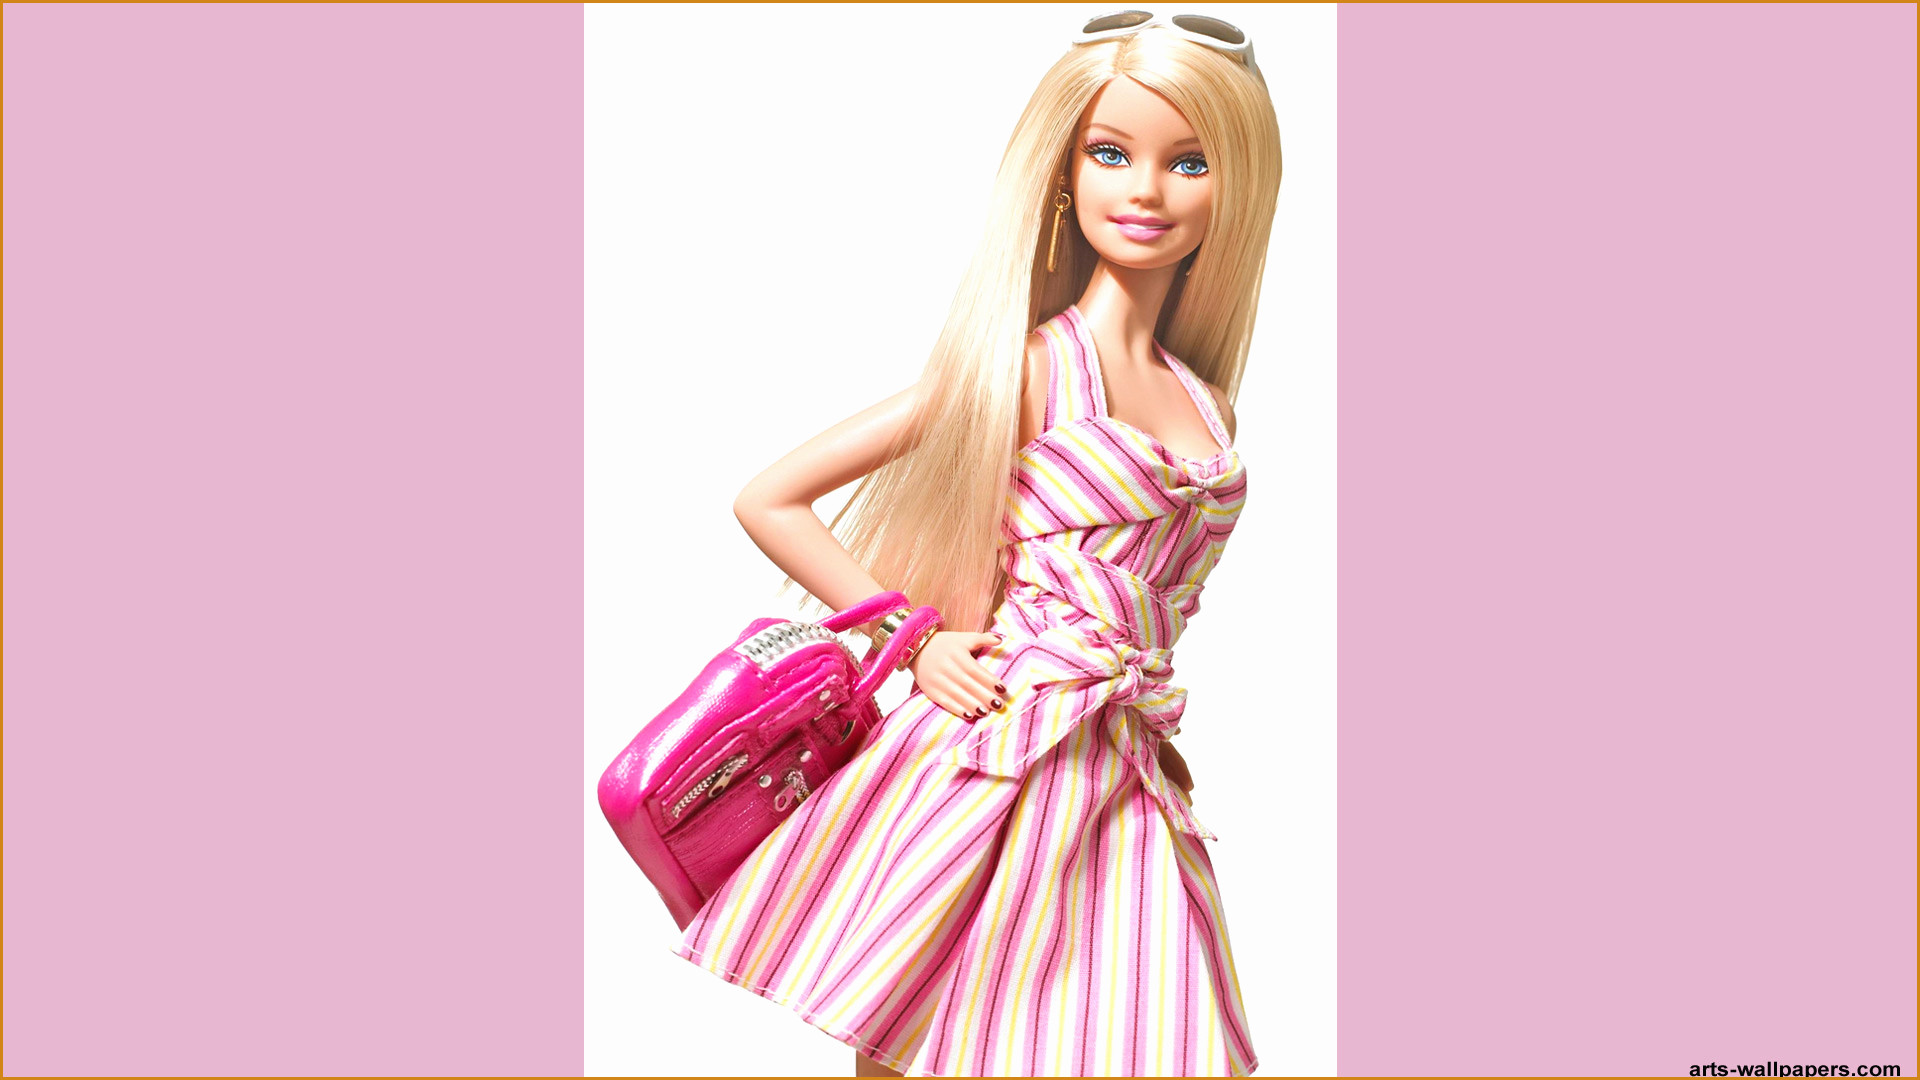 Admirable Of Barbie Wallpaper Of 58 New Figure Of Barbie - Now Barbie , HD Wallpaper & Backgrounds